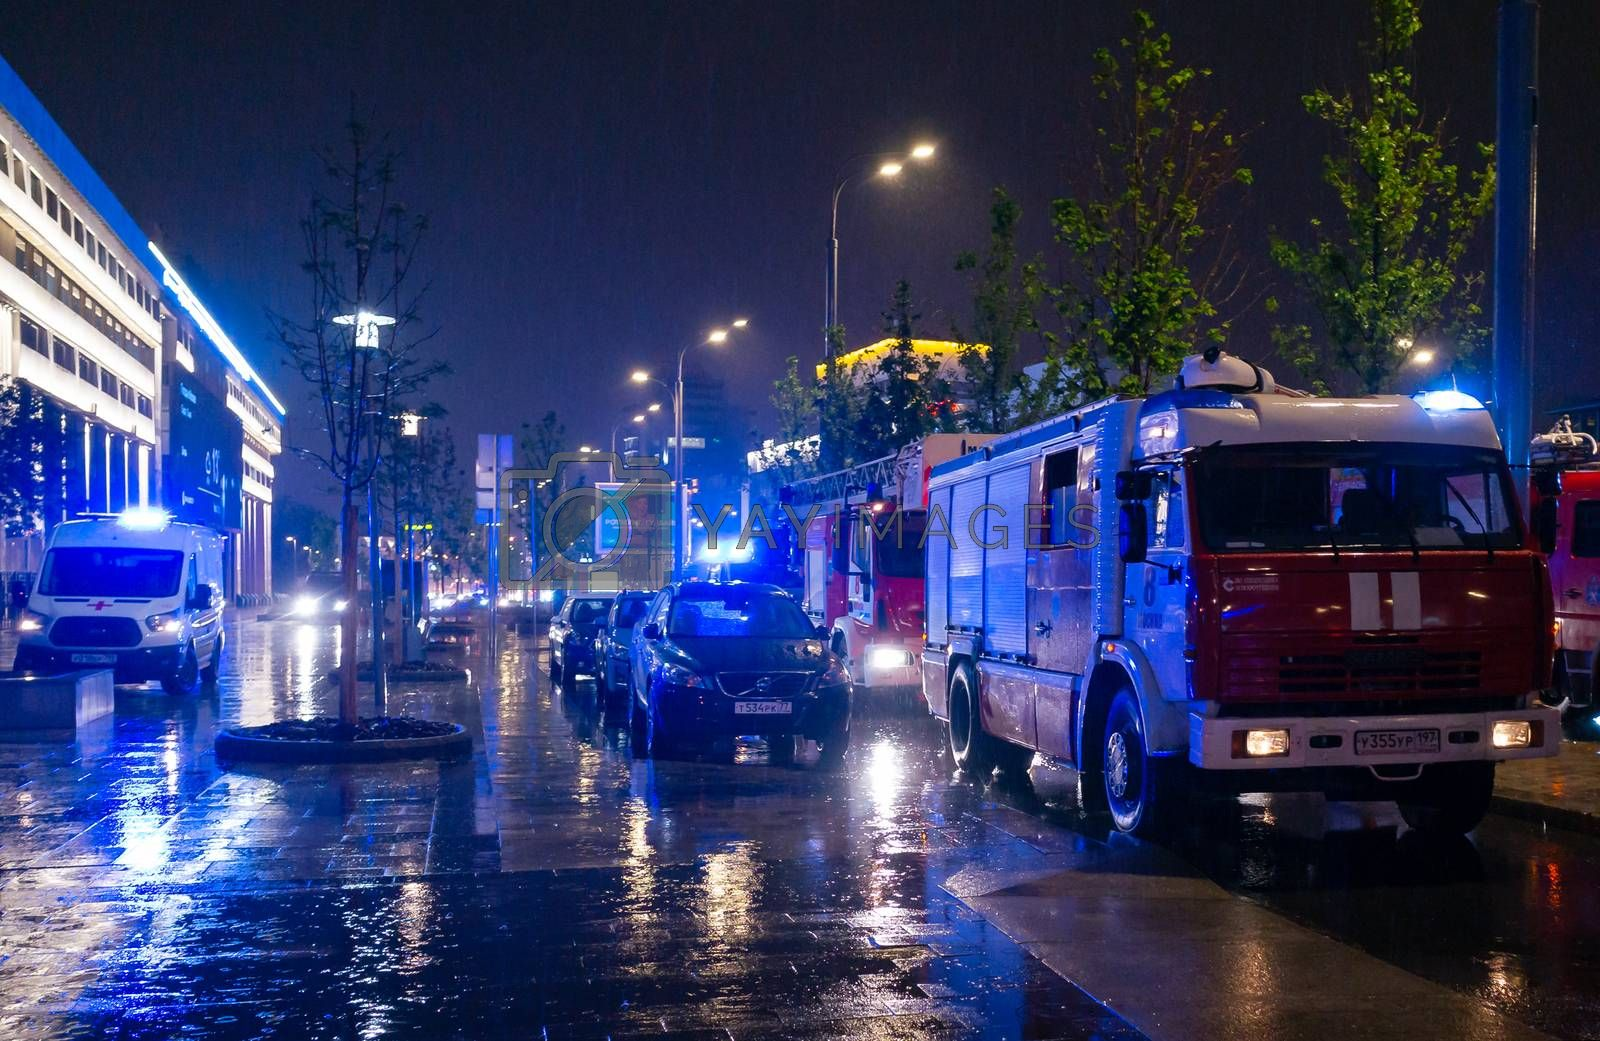 May 15, 2019, Moscow, Russia. Fire engines in the courtyard of the apartment building where the fire occurred, at night during the rain.